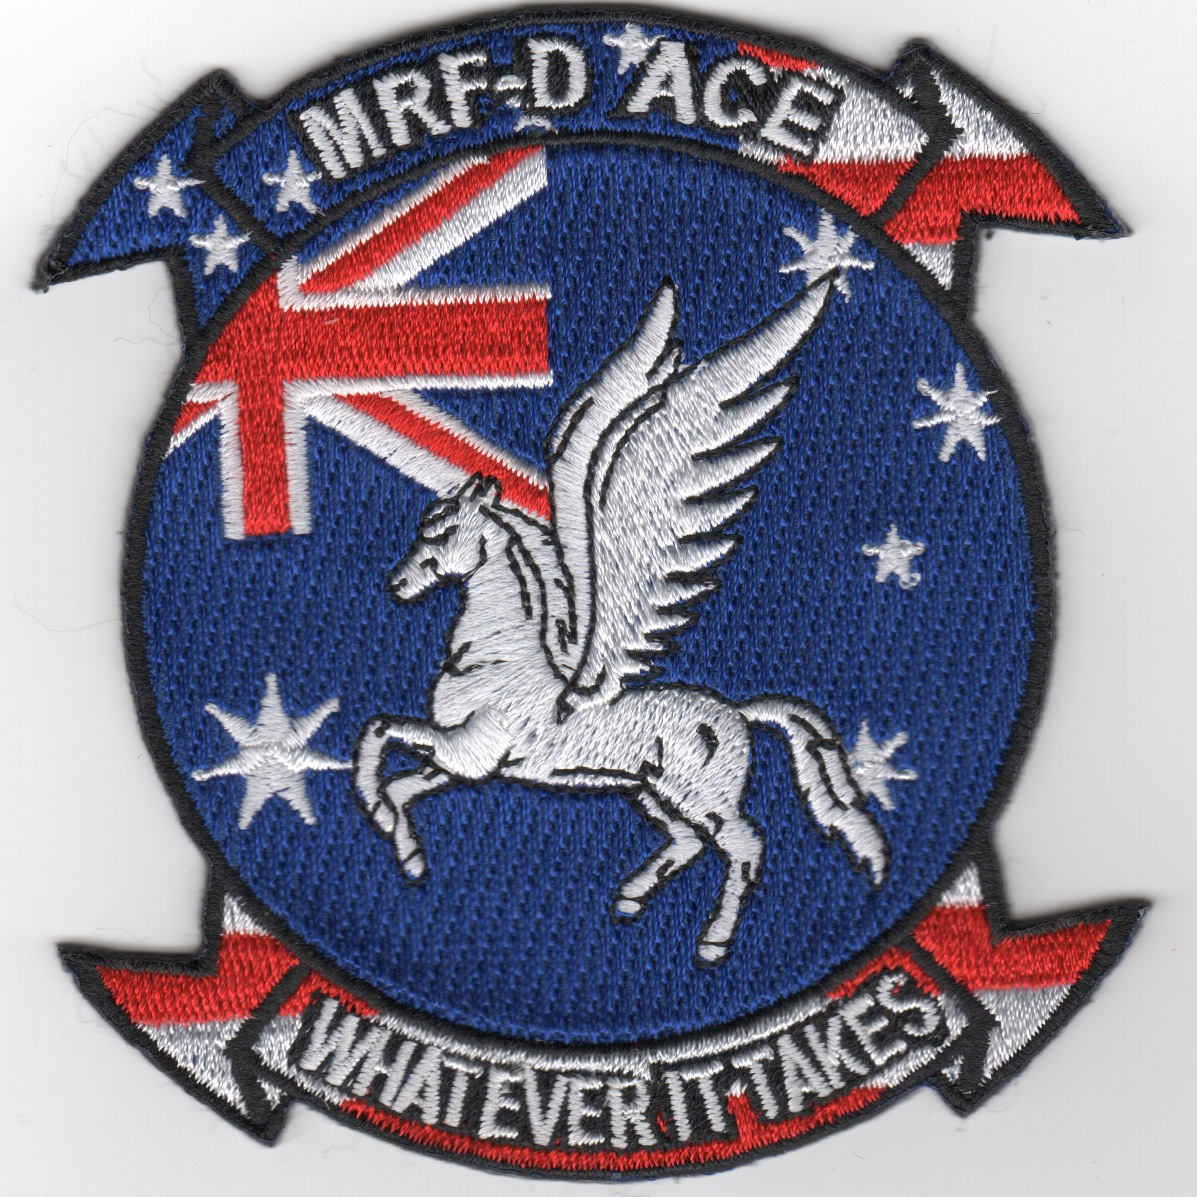 HMH-463 'MRF-D ACE' Patch